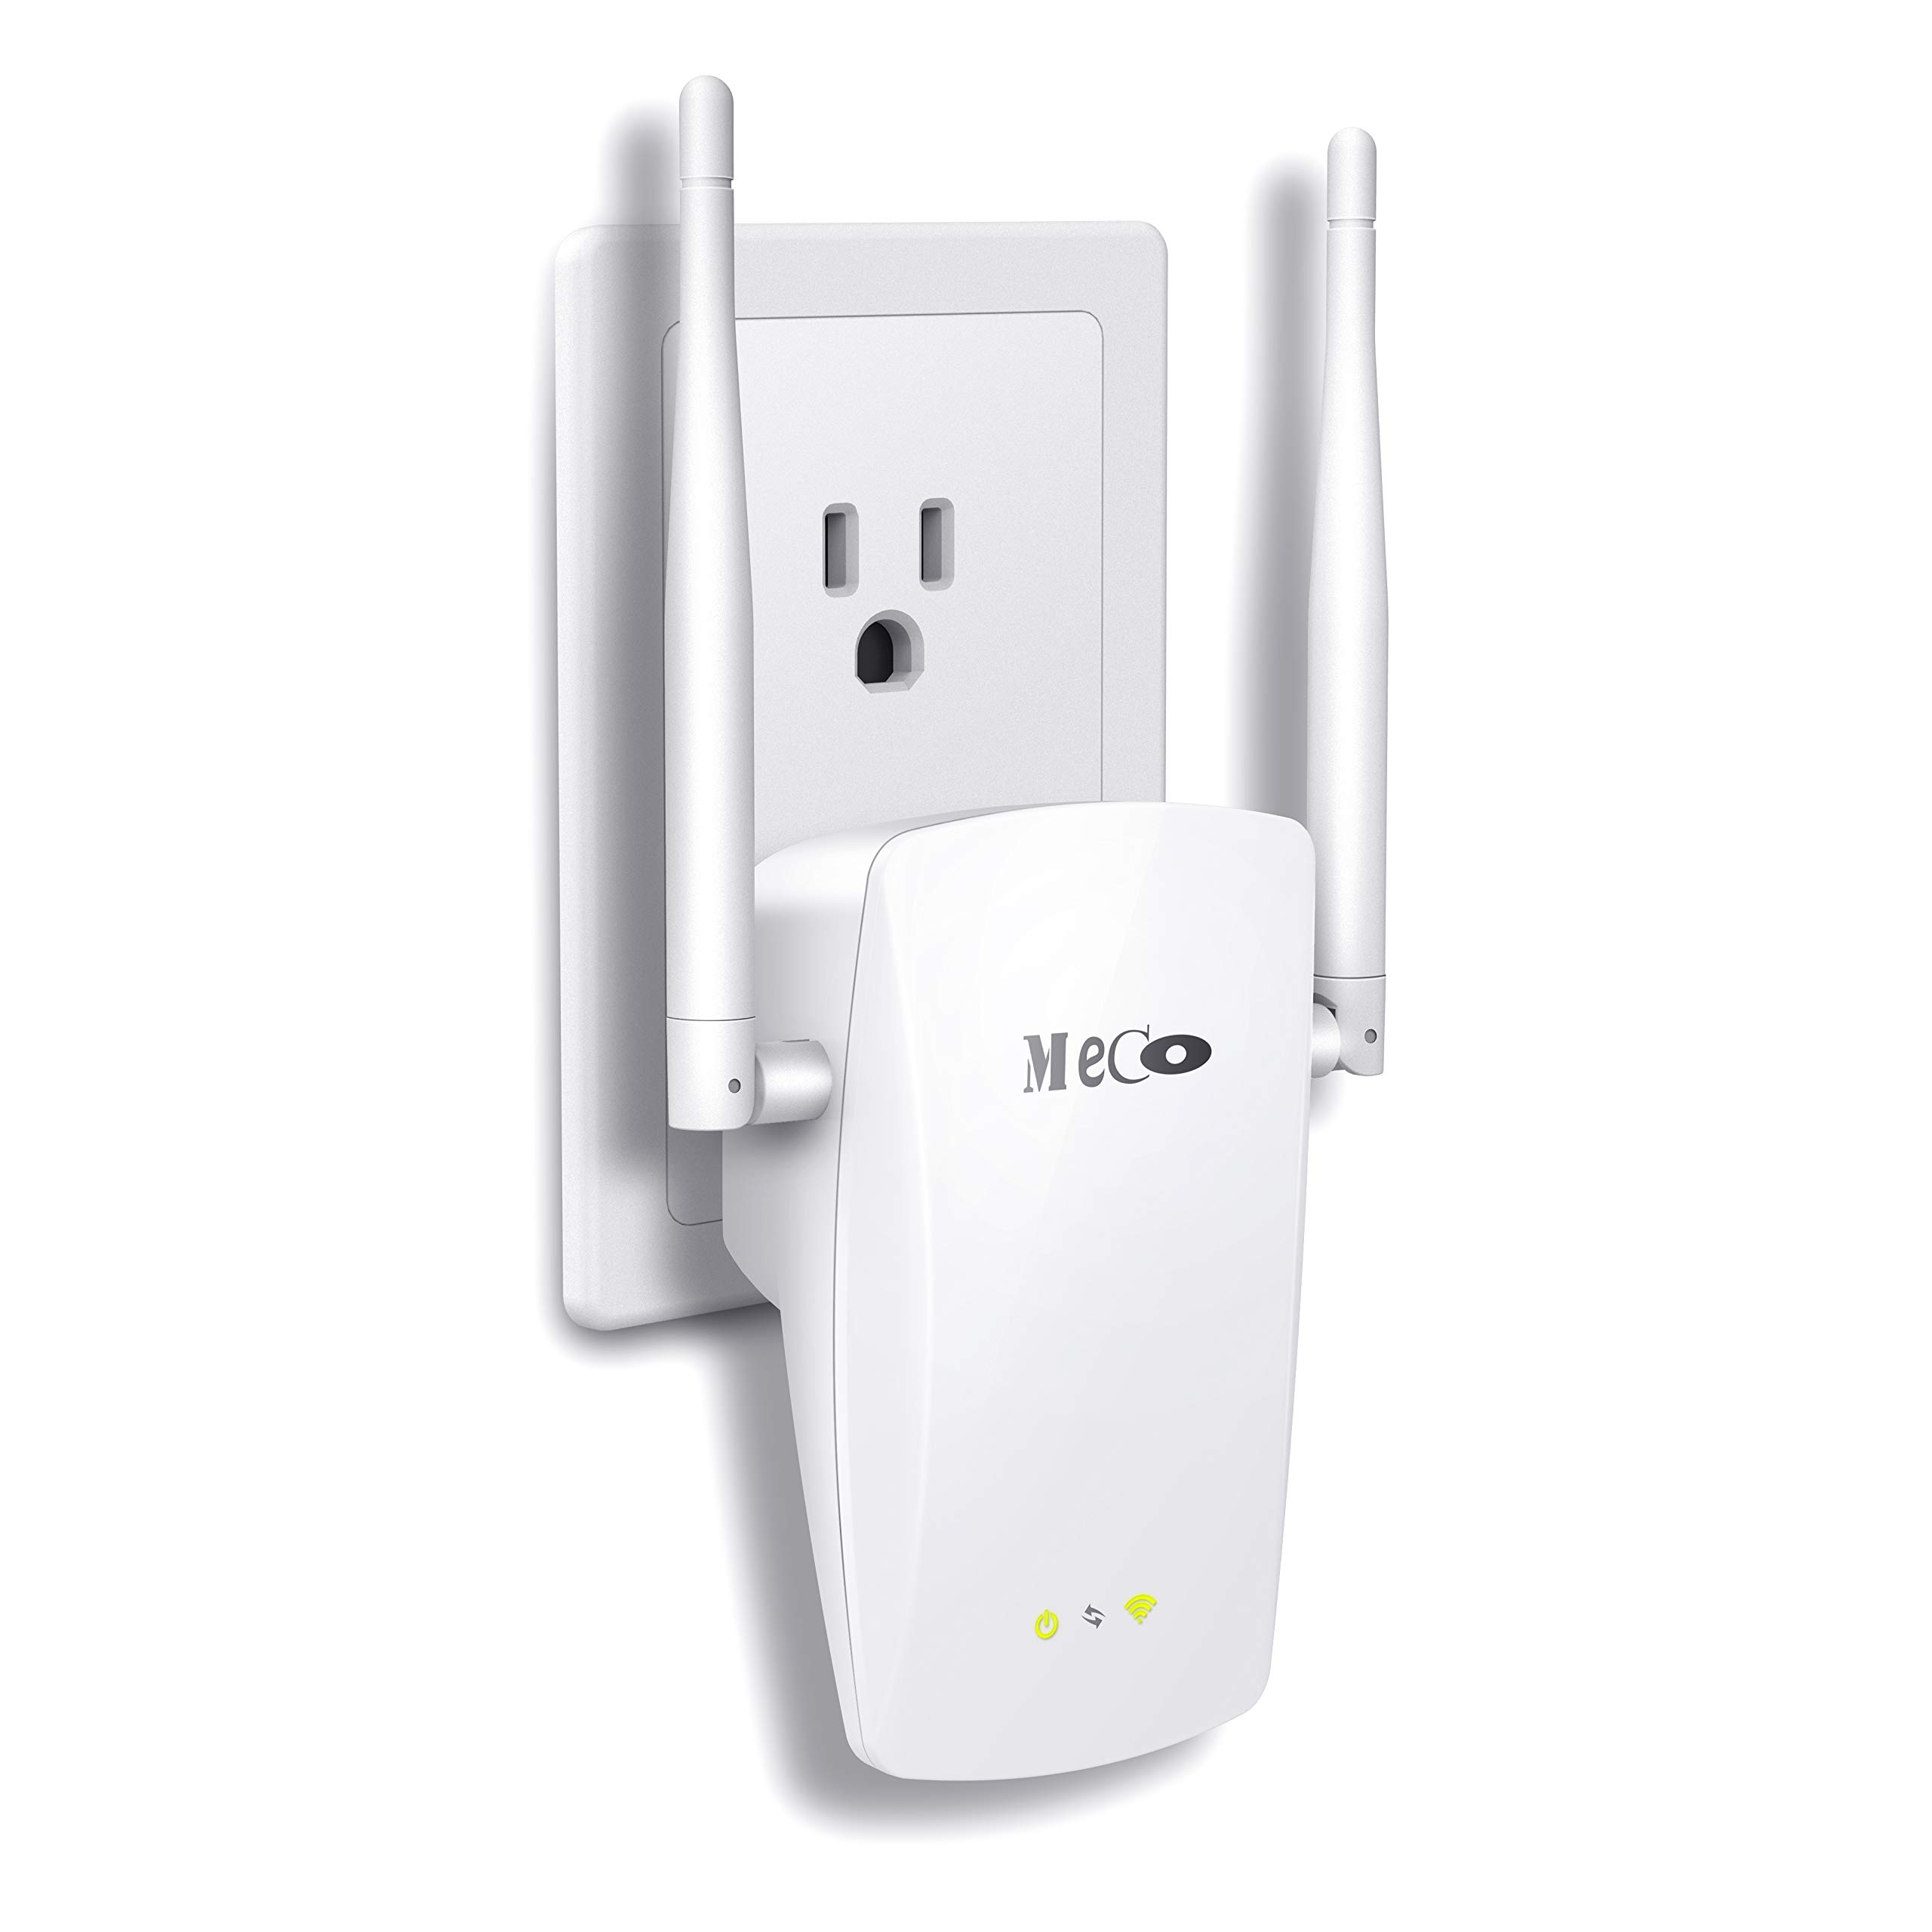 WiFi Range Extender, MECO 300Mbps WiFi Repeater Wireless Signal Booster Amplifier Supports Router Mode/Repeater/Access Point, Easily Setup and Seamless Roaming